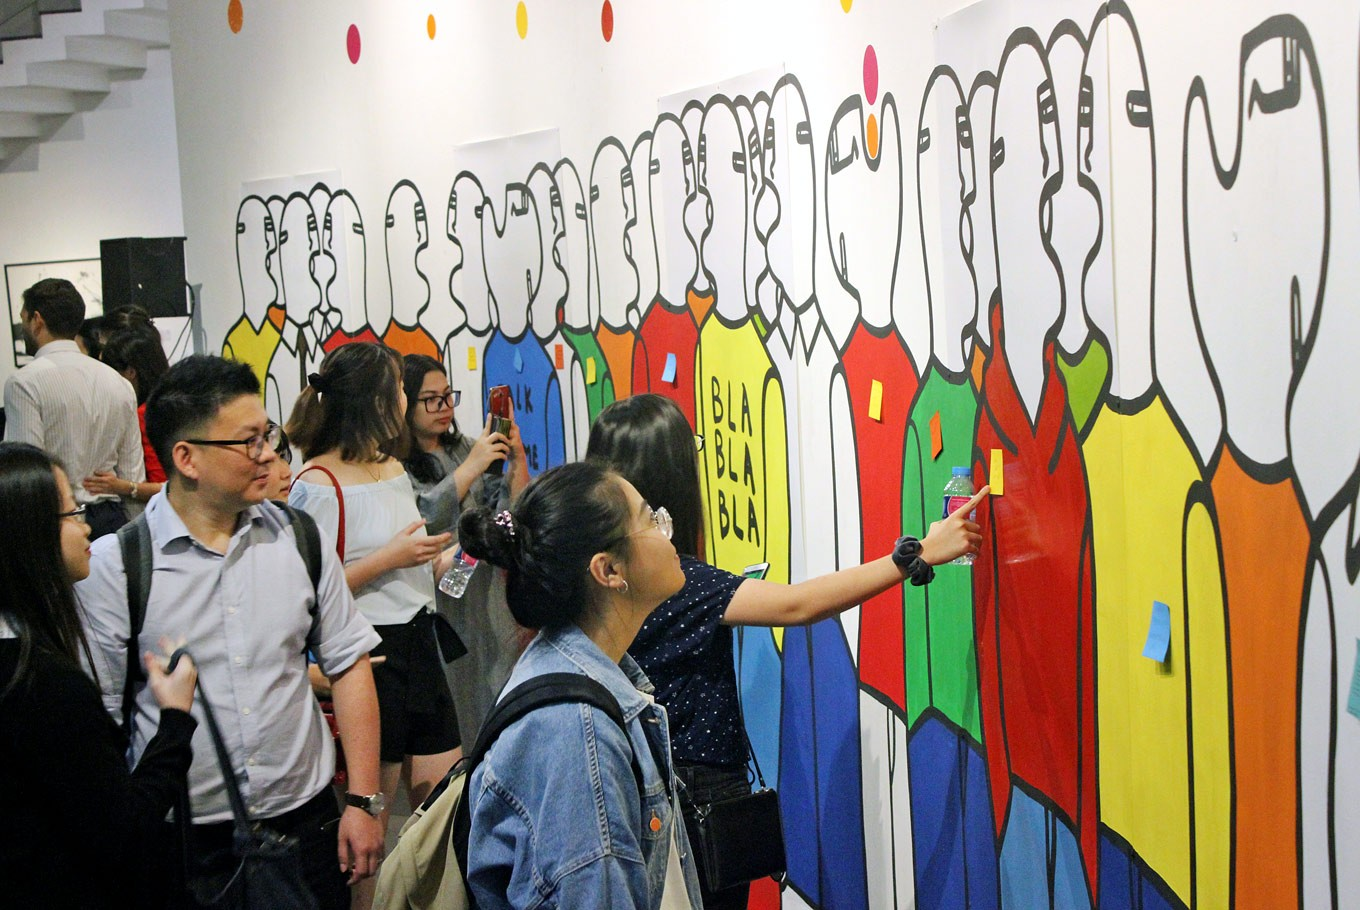 Fabrizio Dusi: Debuts his artwork in Asia for the first time